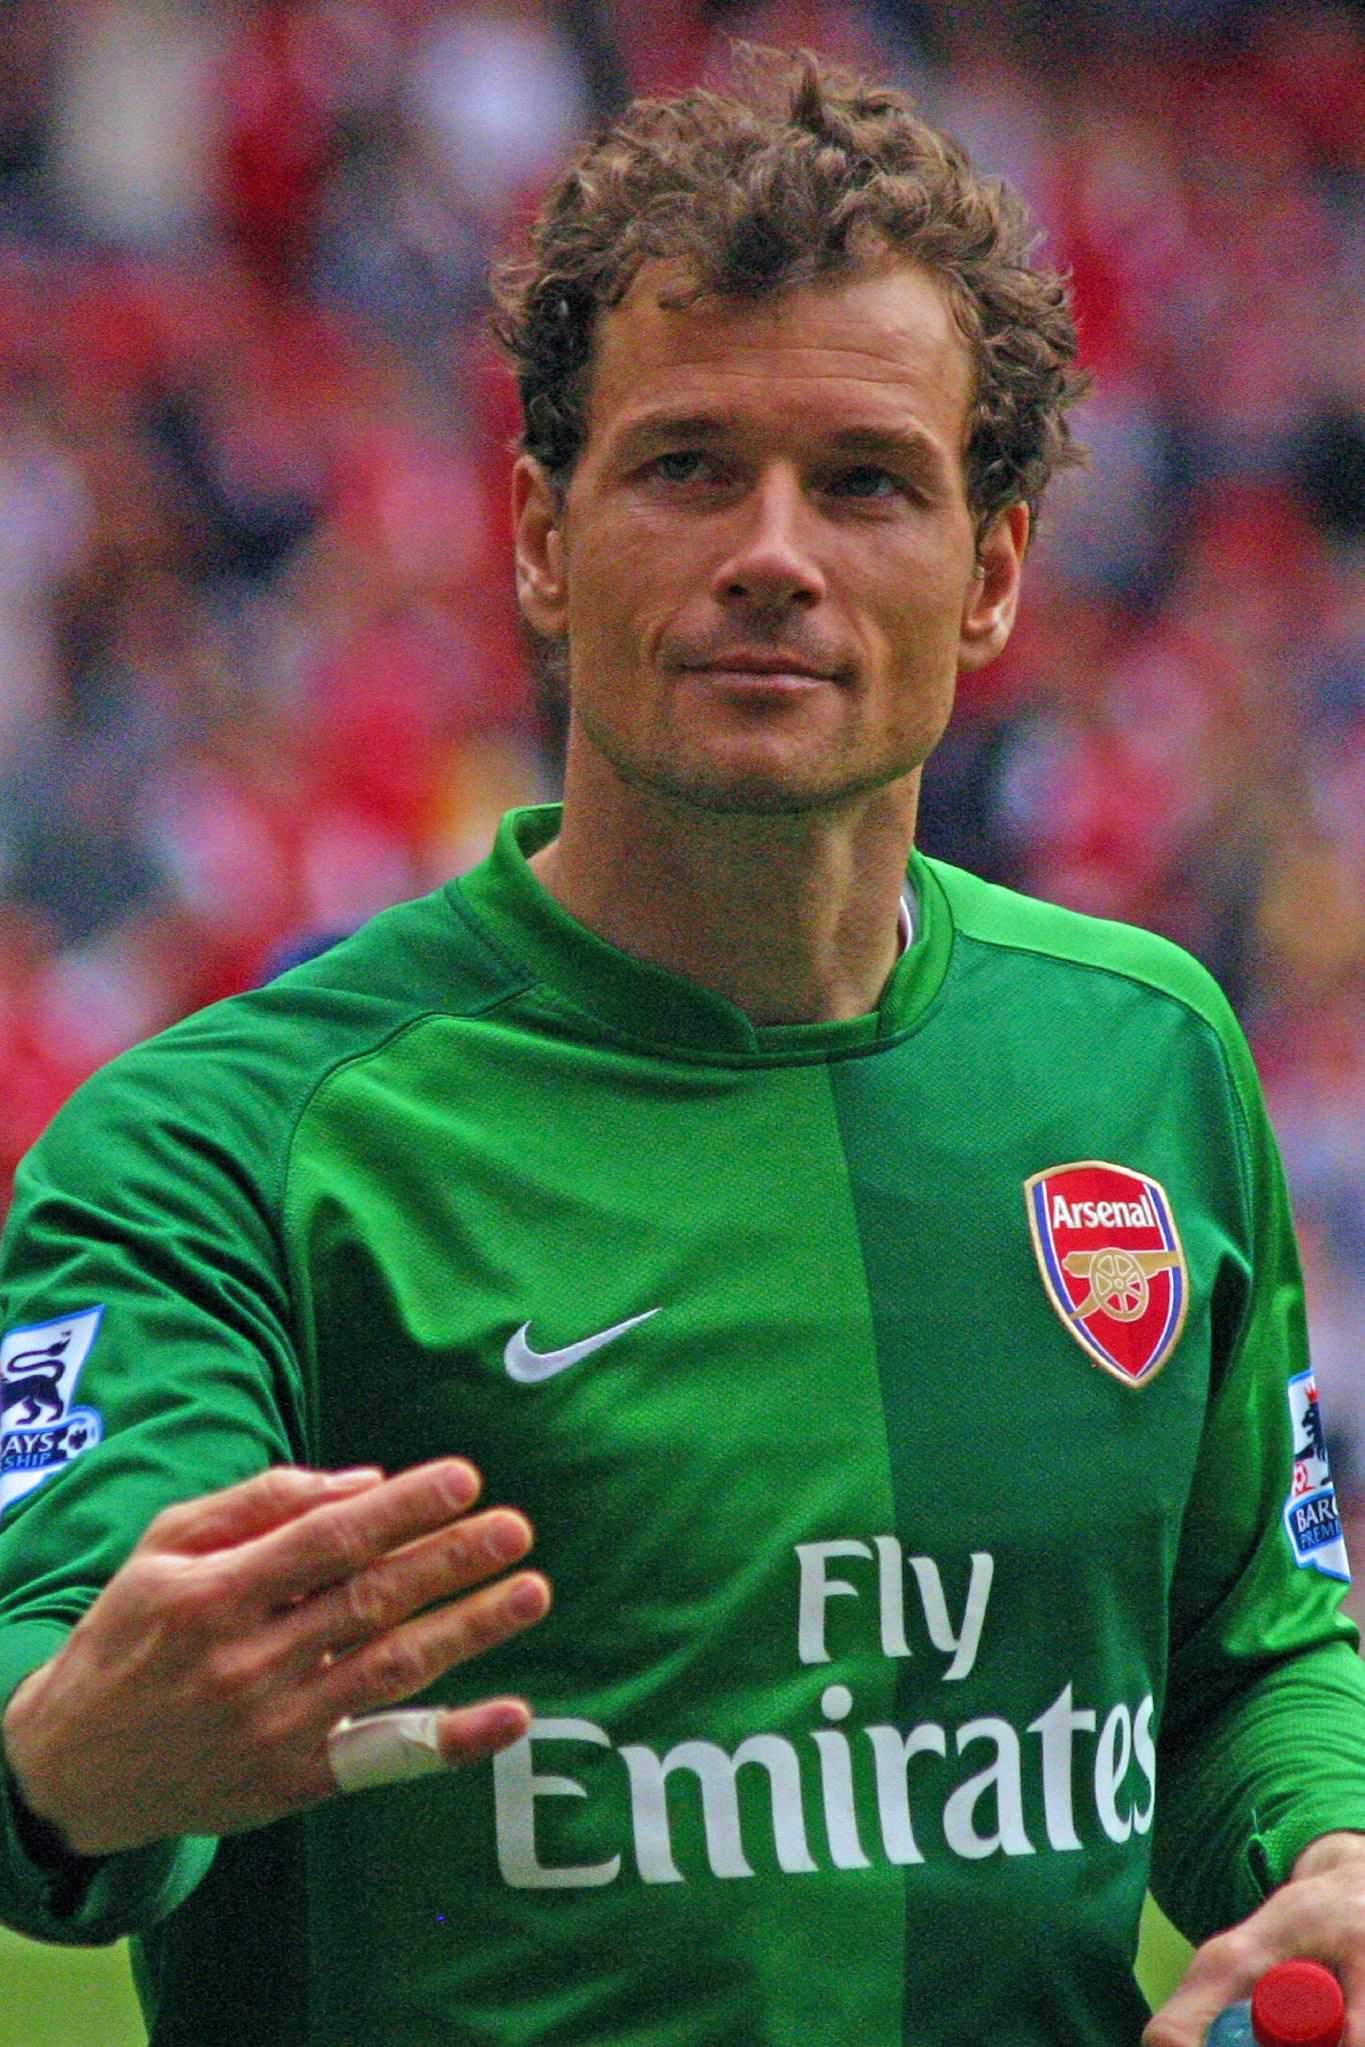 The 49-year old son of father Hans-Dieter  and mother(?) Jens Lehmann in 2019 photo. Jens Lehmann earned a  million dollar salary - leaving the net worth at 6 million in 2019